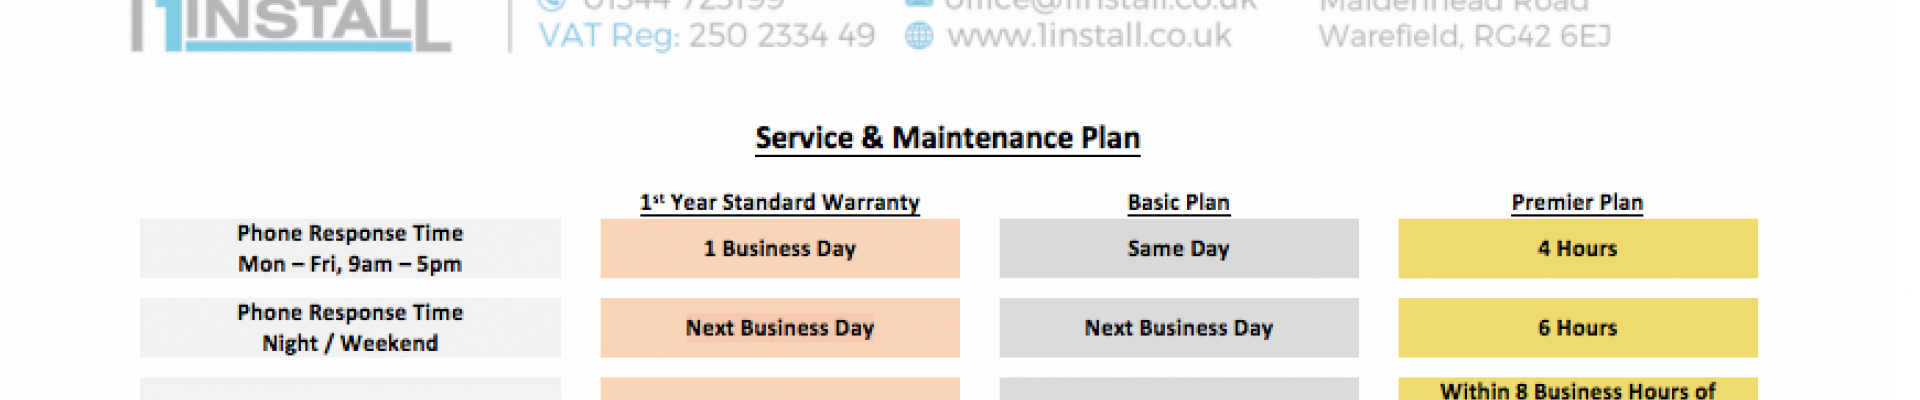 Control4 Service Maintenance – Home Maintenance Services Agreement